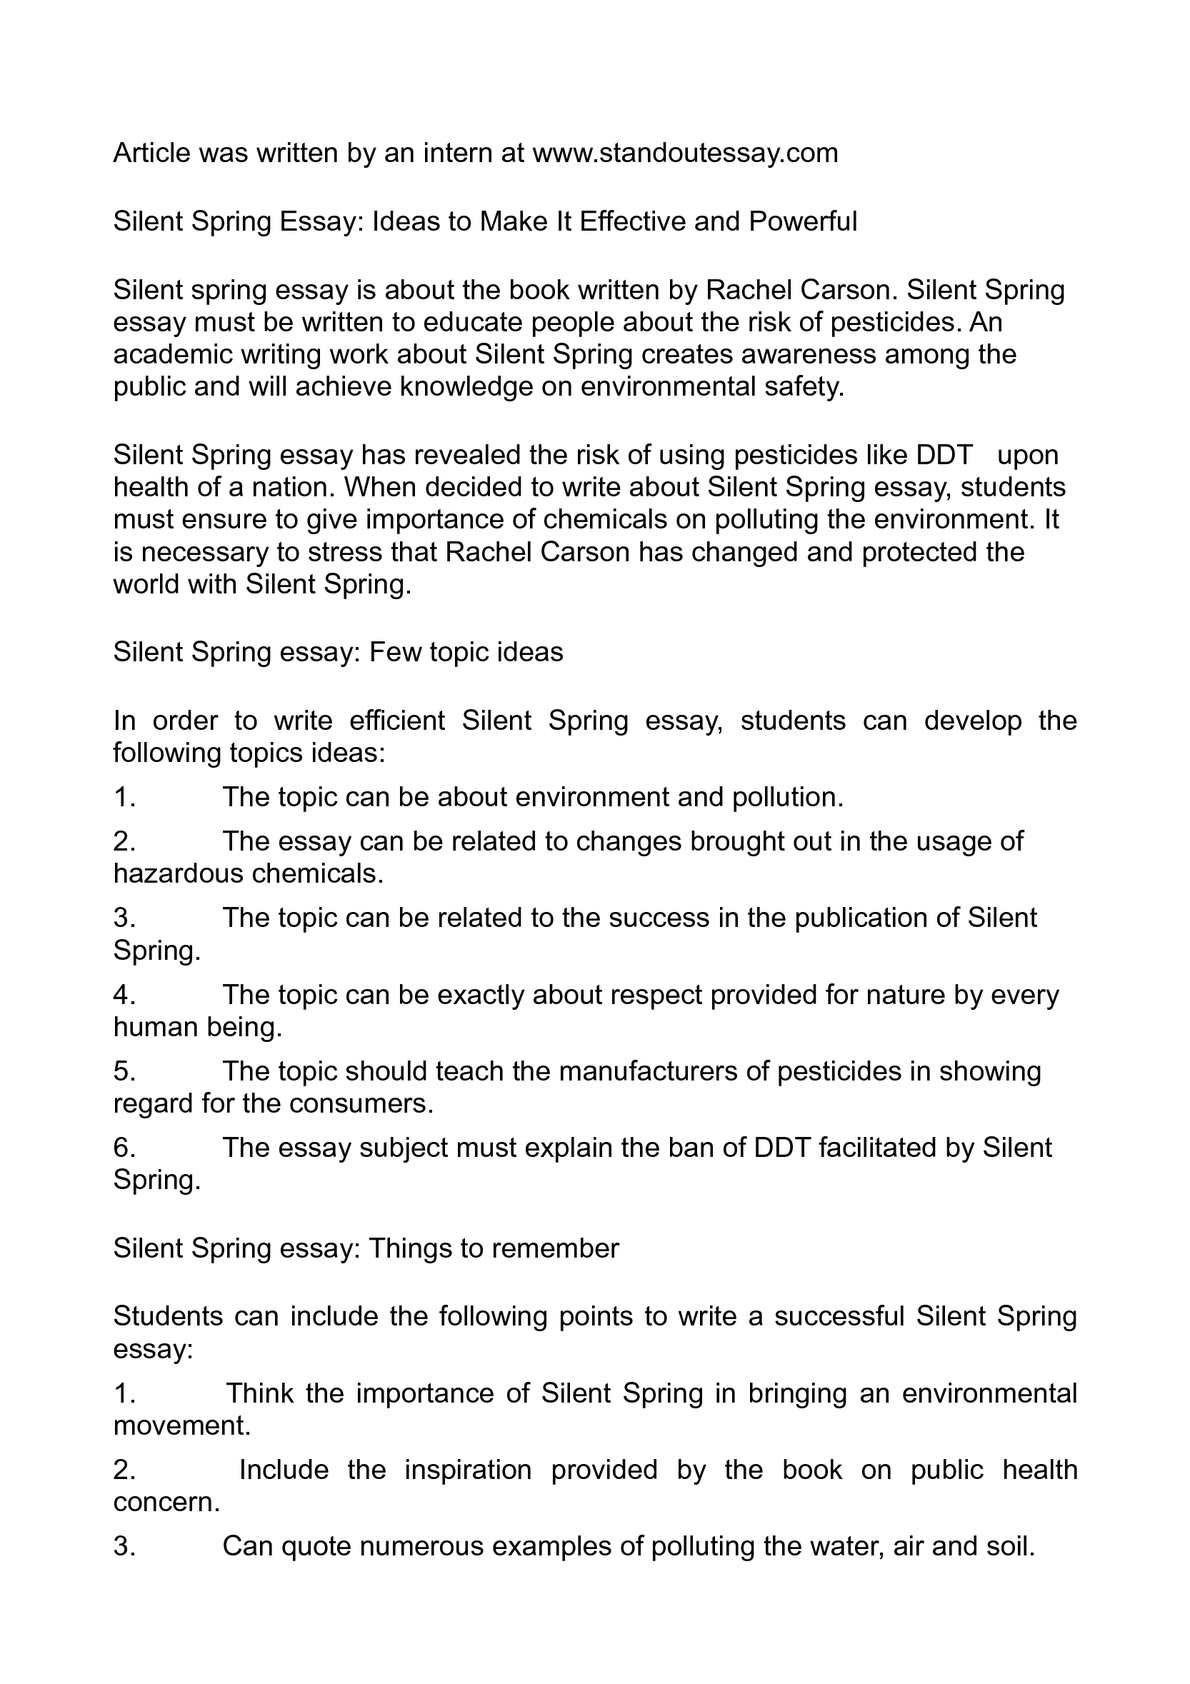 silent spring essay Professional essays on silent spring authoritative academic resources for essays, homework and school projects on silent spring.